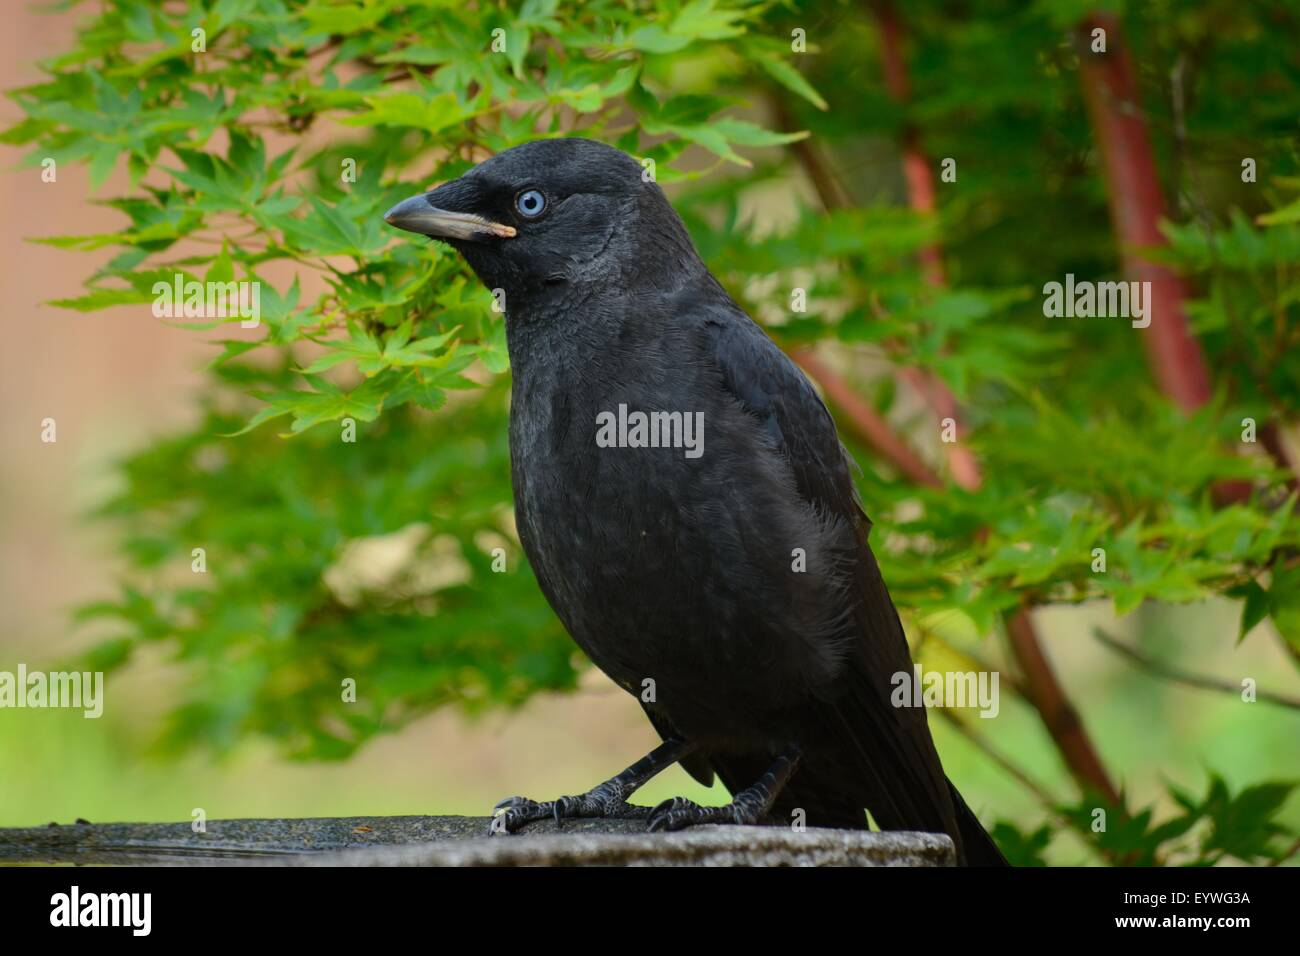 A young Jackdaw perched on the edge of a bird bath. - Stock Image